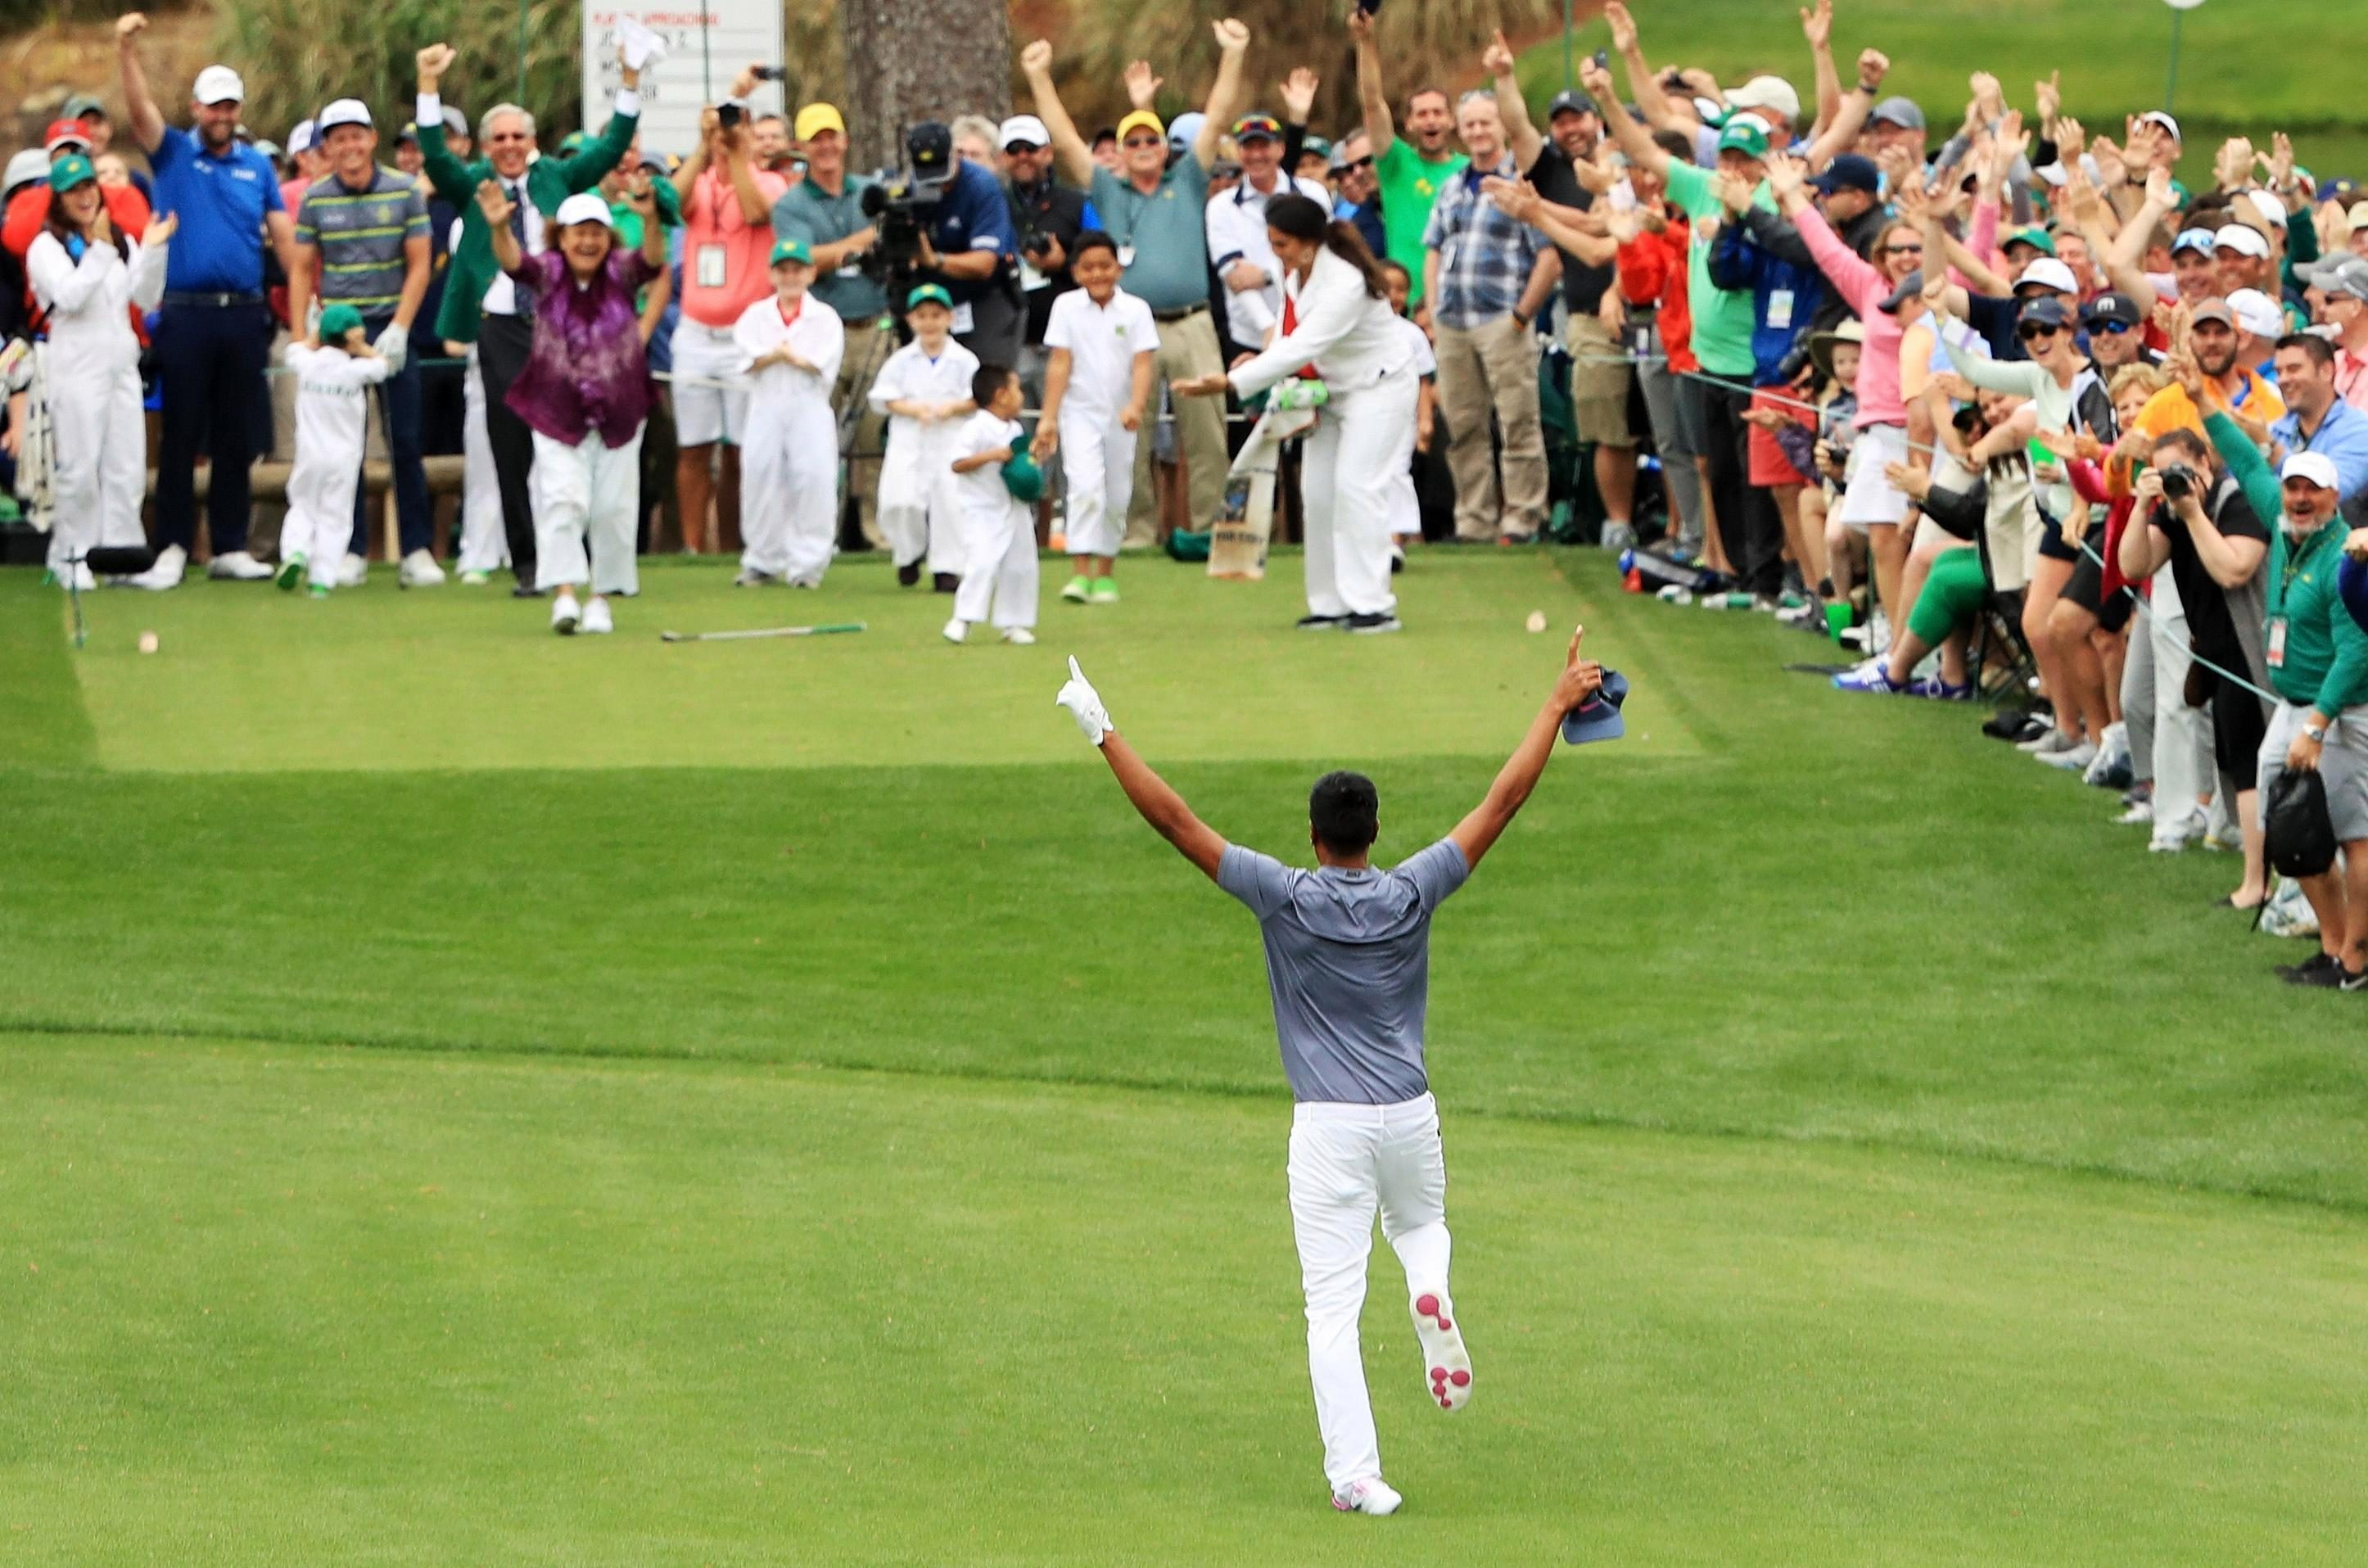 Tony Finau tripped and dislocated ankle after celebrating hole in one